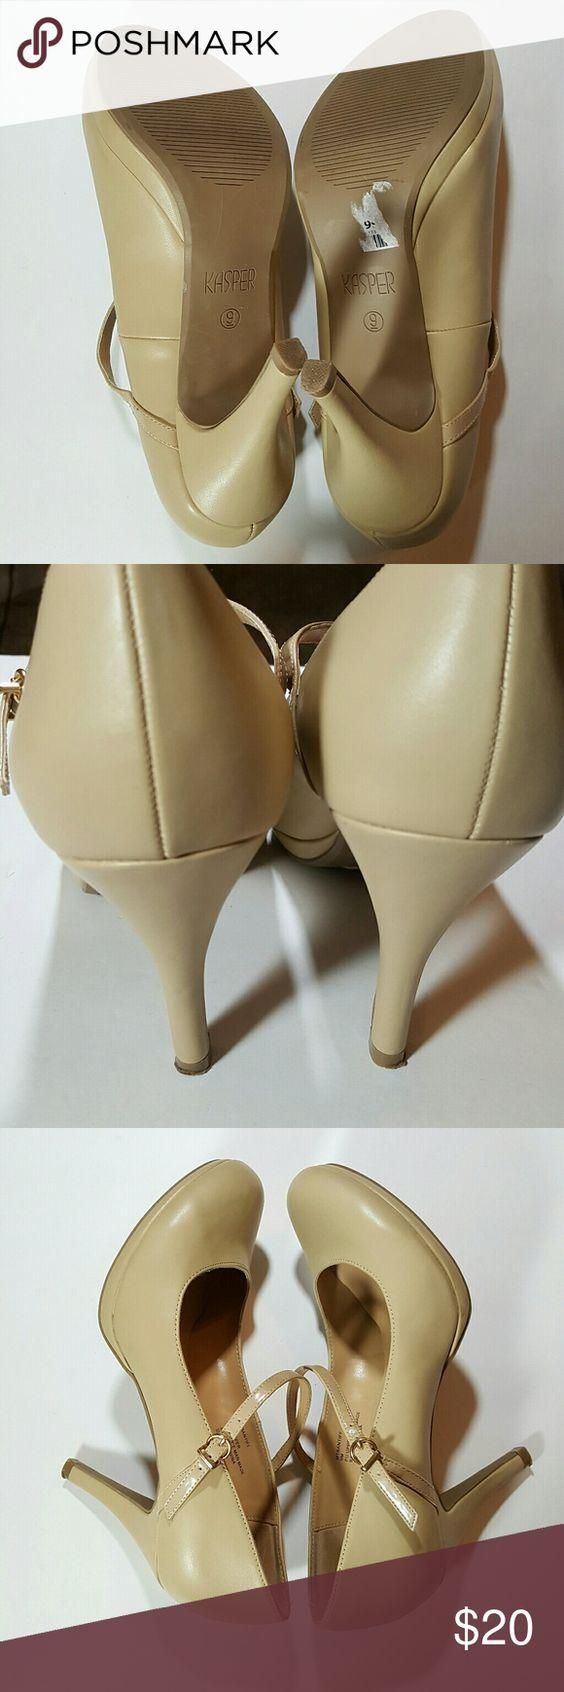 Kasper Tan High Heel shoes size 9M Kasper Tan Mary Jane High Heel shoes size 9M has a knick on the toe front of shoes from shoes rack but in great condition please see pictures for overall condition Kasper Shoes Heels